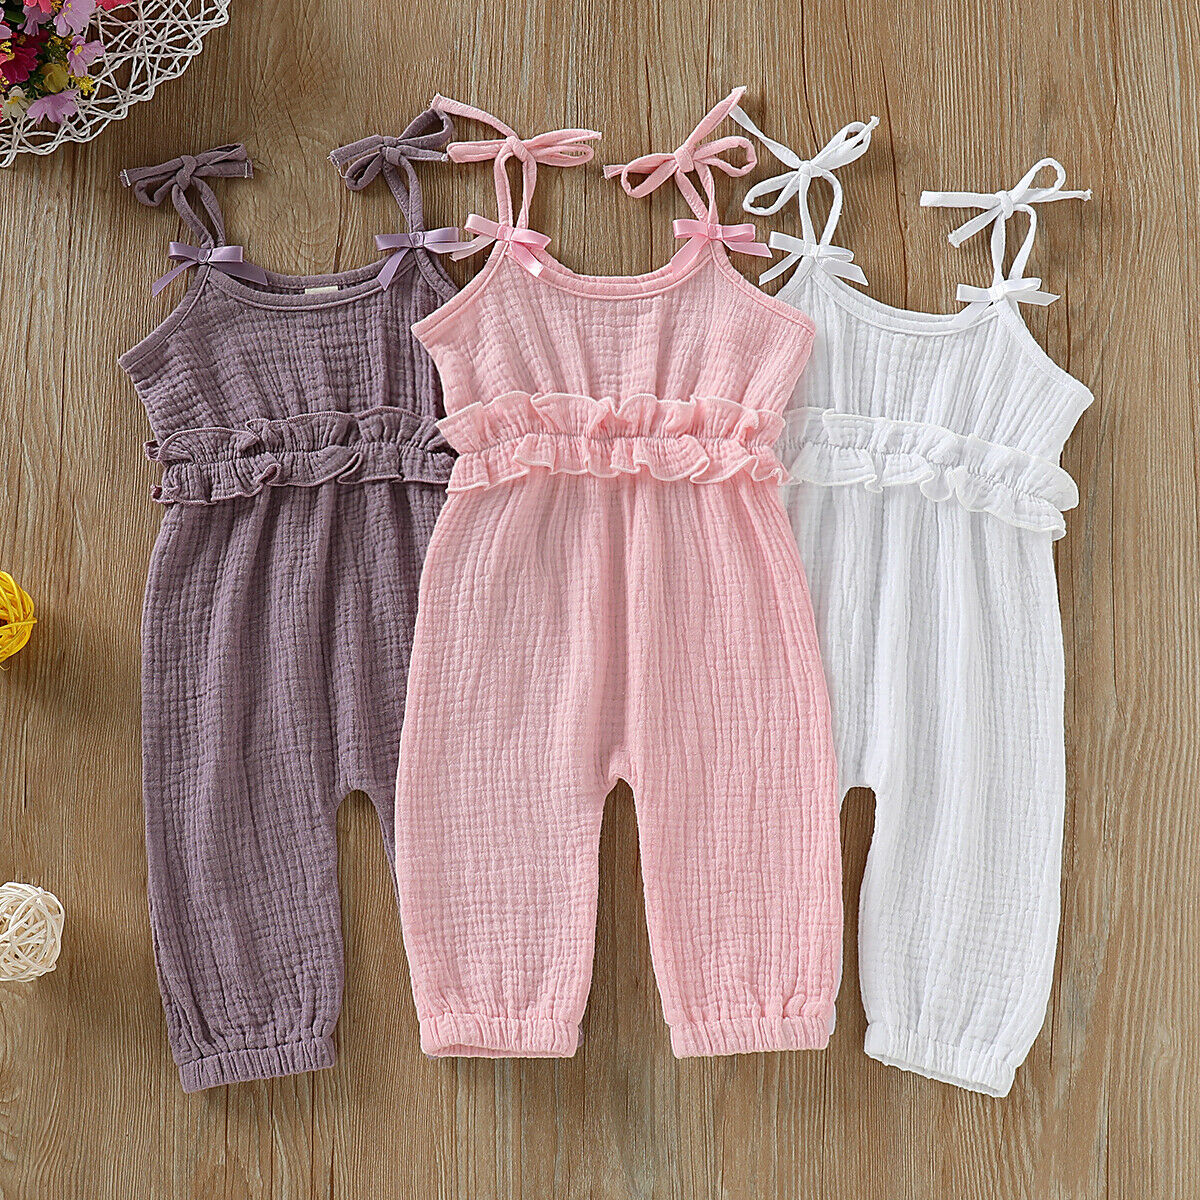 Newborn Baby Girls Strap Pants Solid Romper Jumpsuit Overalls Outfits Sunsuit